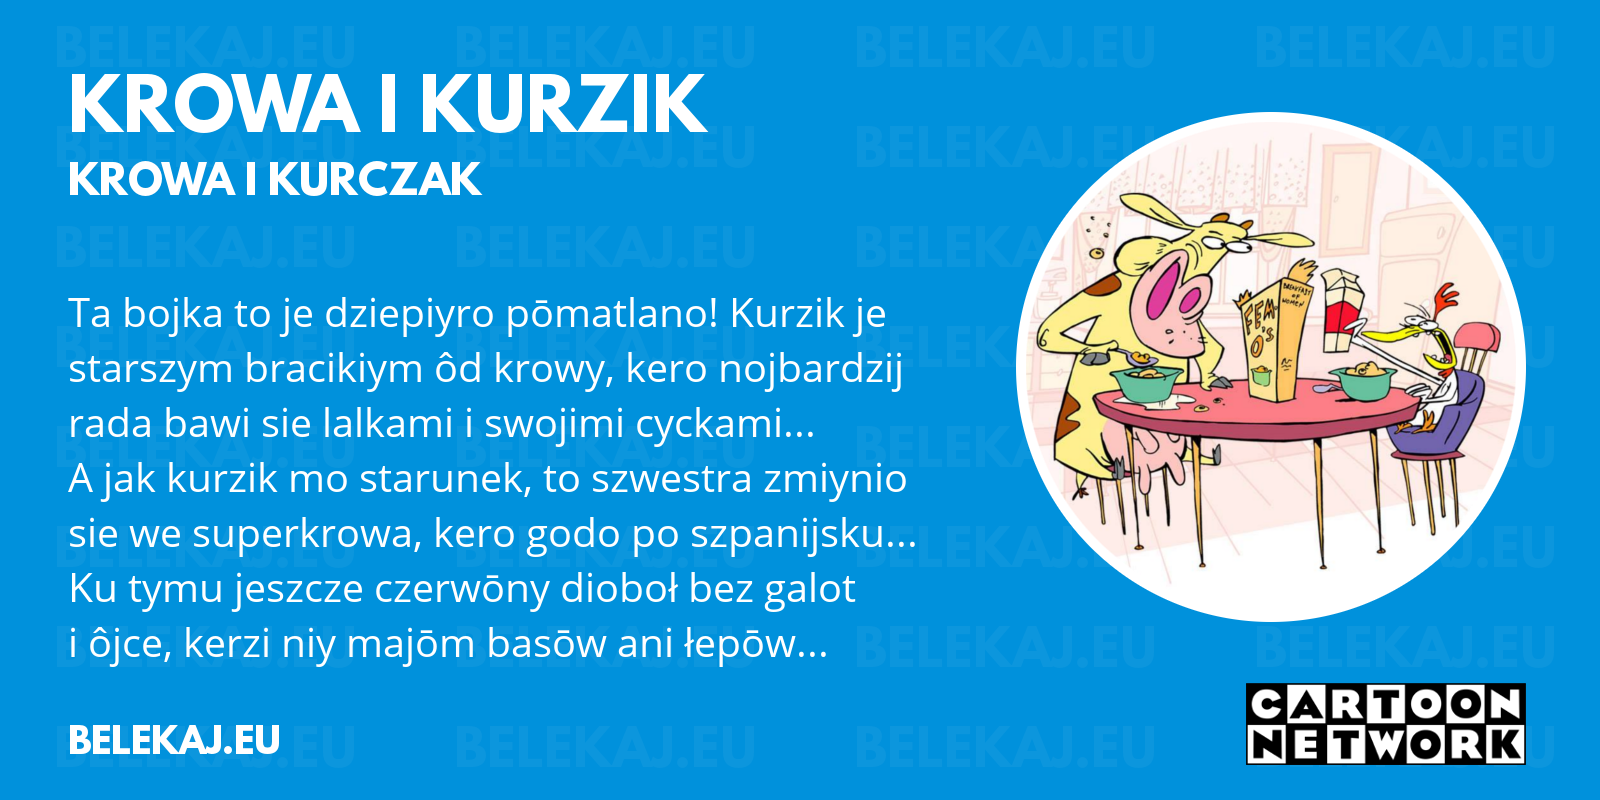 Krowa i Kurczak, Cartoon Network po śląsku - blog bele kaj